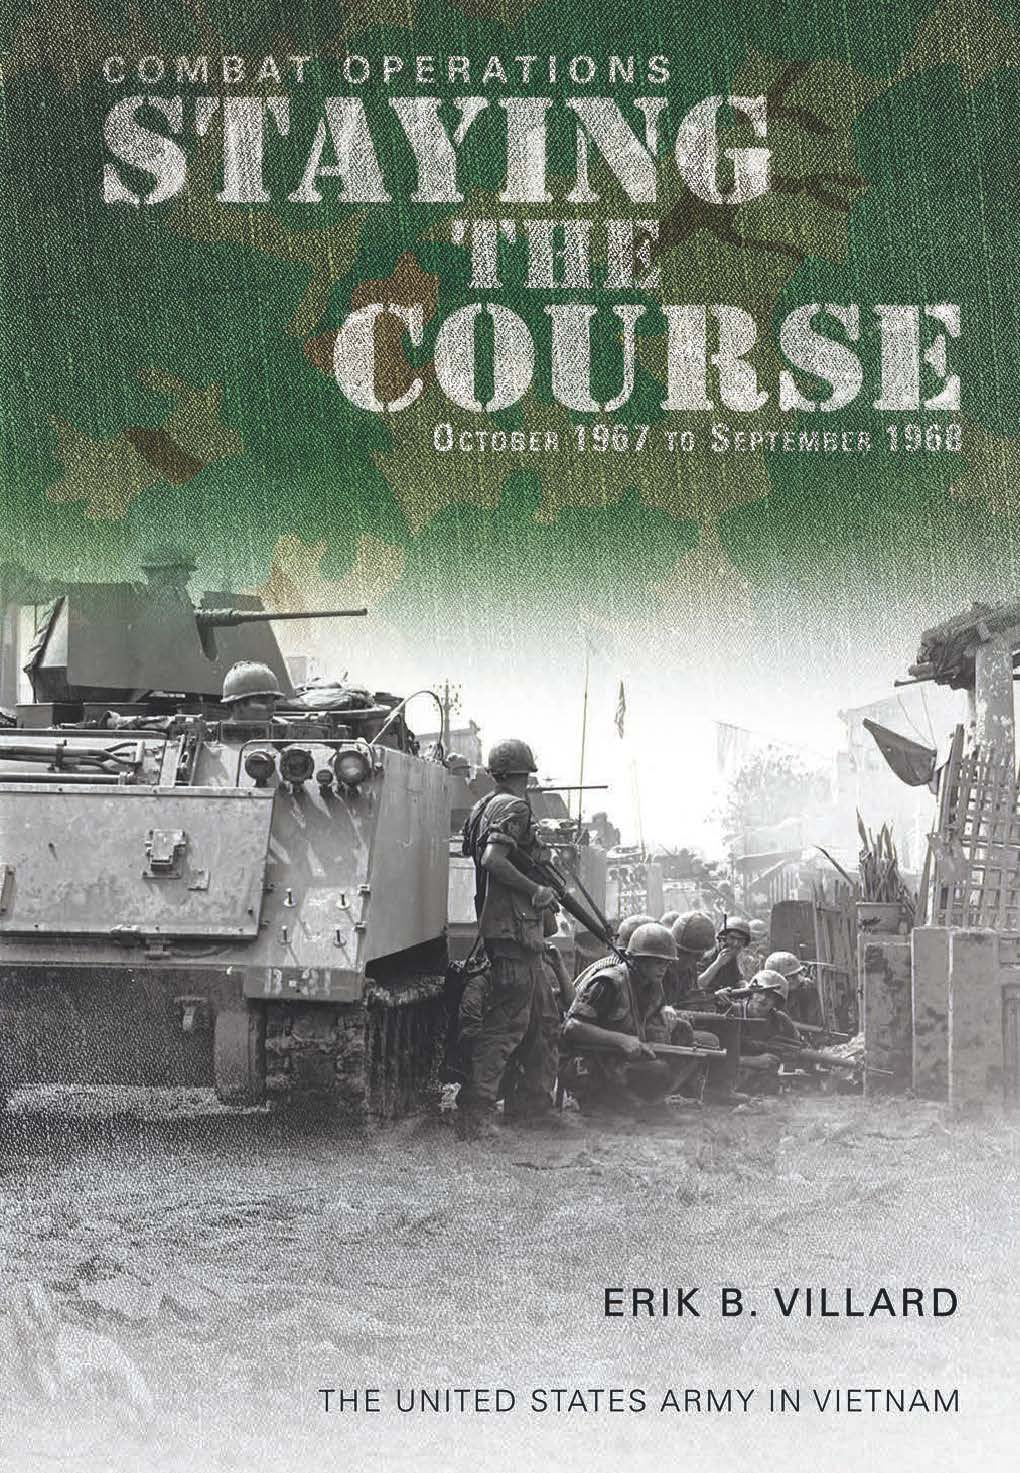 Staying the Course - Combat Operations, October 1967-September 1968